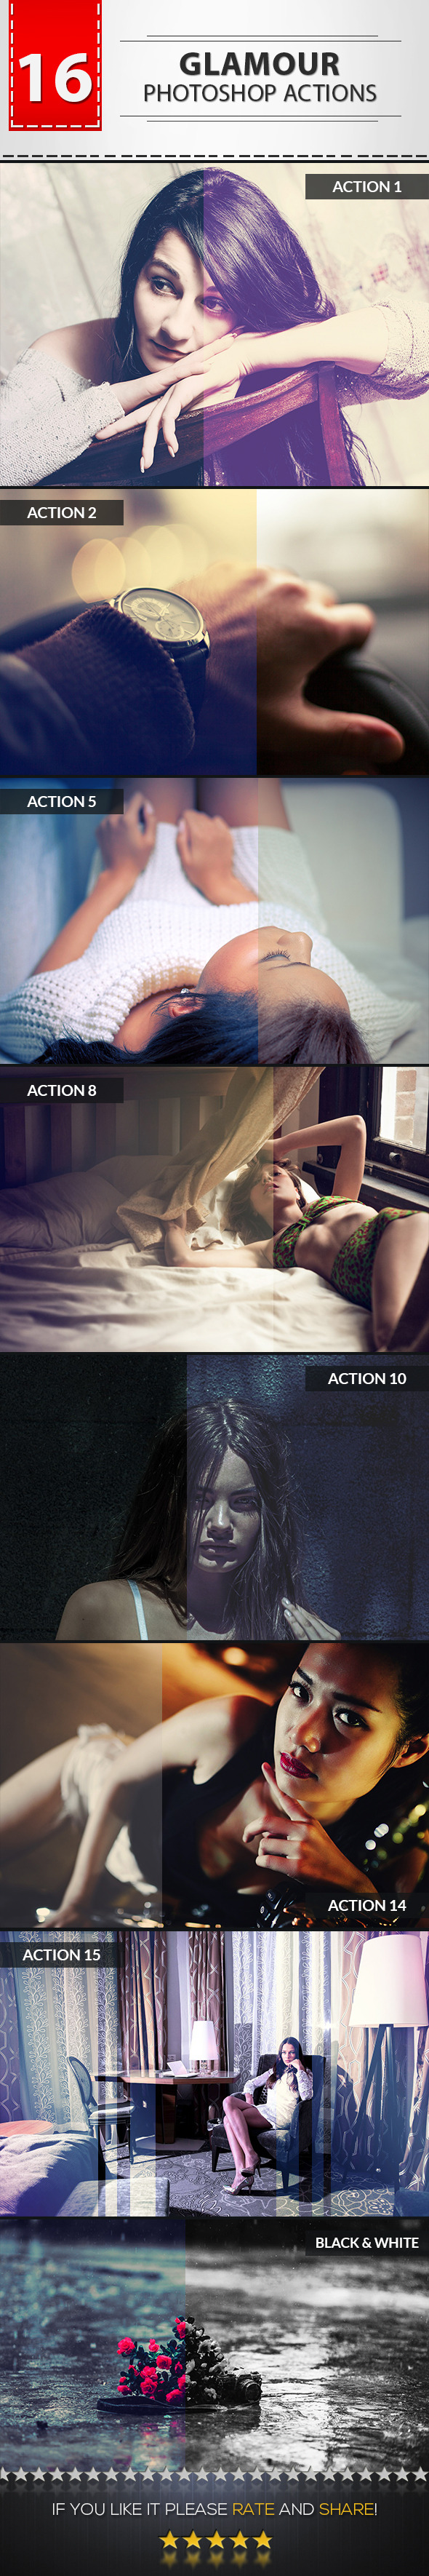 GraphicRiver 16 Glamour Photoshop Actions 9719399